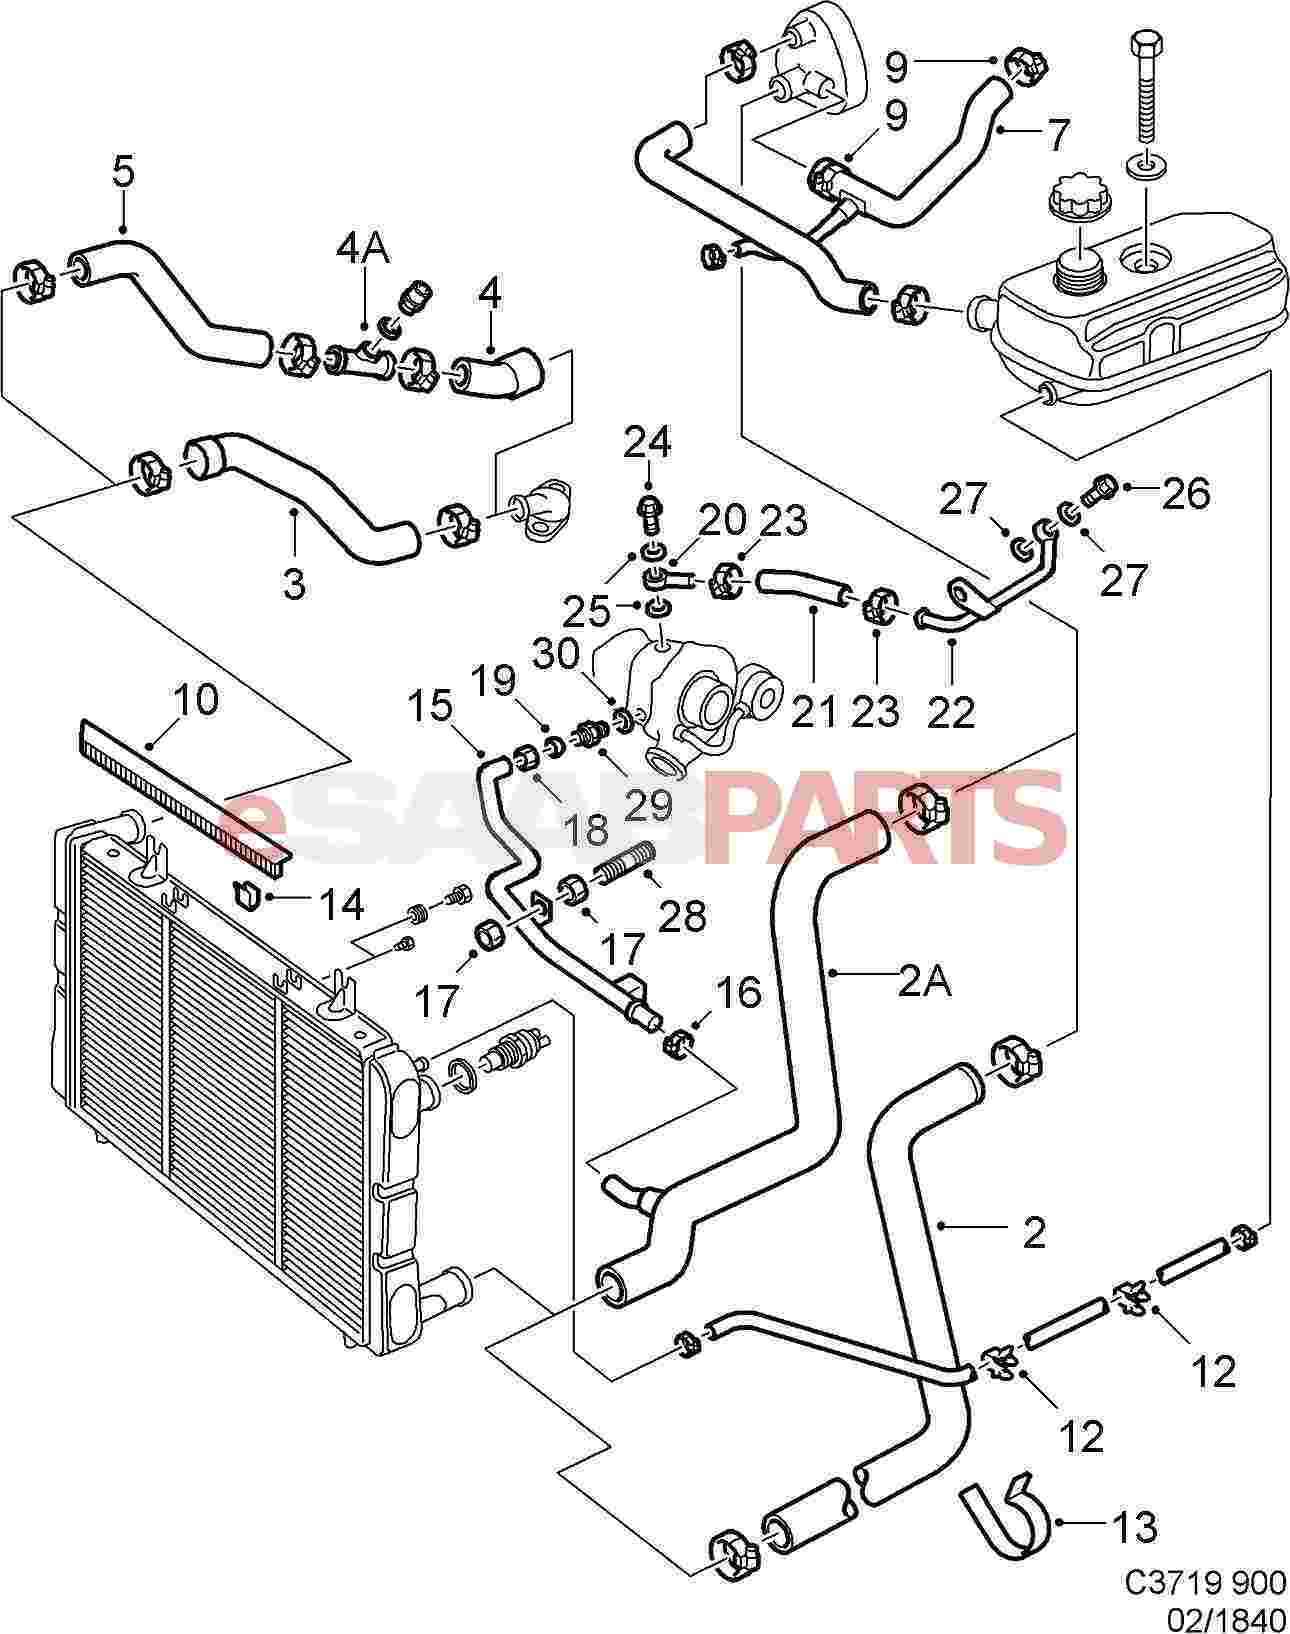 vw passat engine diagram neutral safety switch wiring 96 chevy tahoe b6 s4 database audi 1so lektionenderliebe de sticker b5 a8e preistastisch